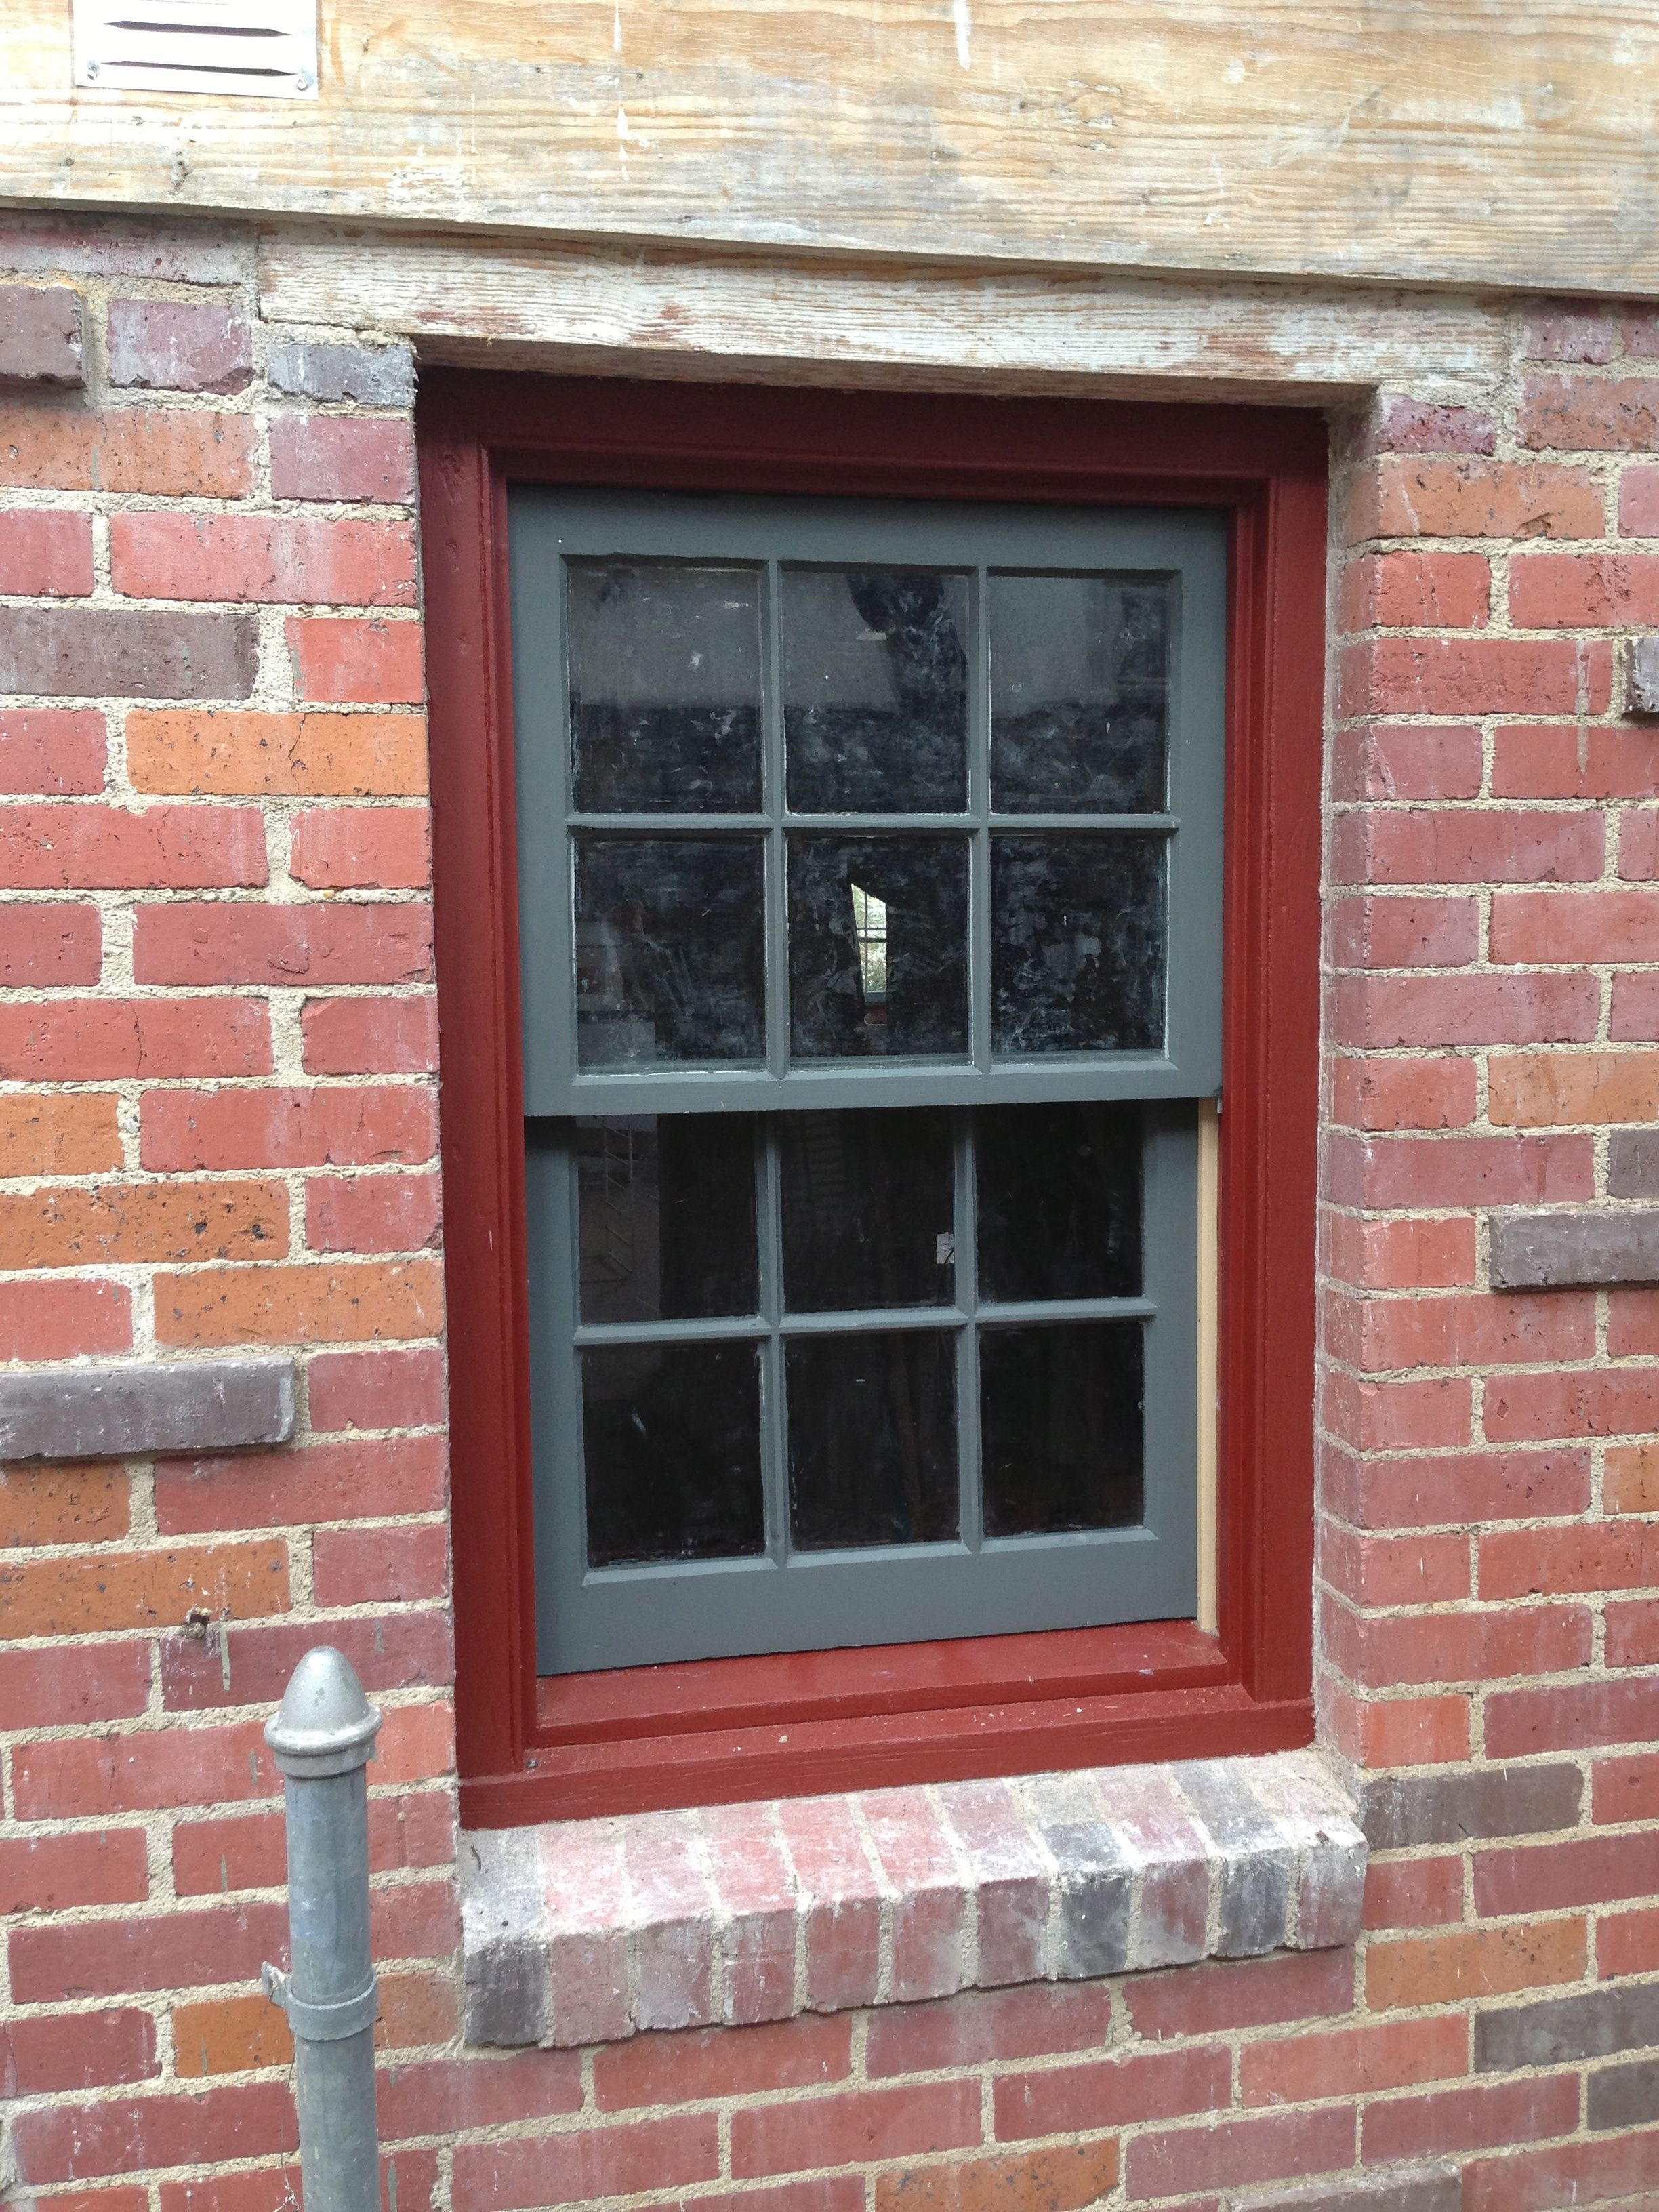 Window painted downpipe by farrow and ball exterior eggshell the reddish trim brings out the for Farrow and ball exterior paint ideas